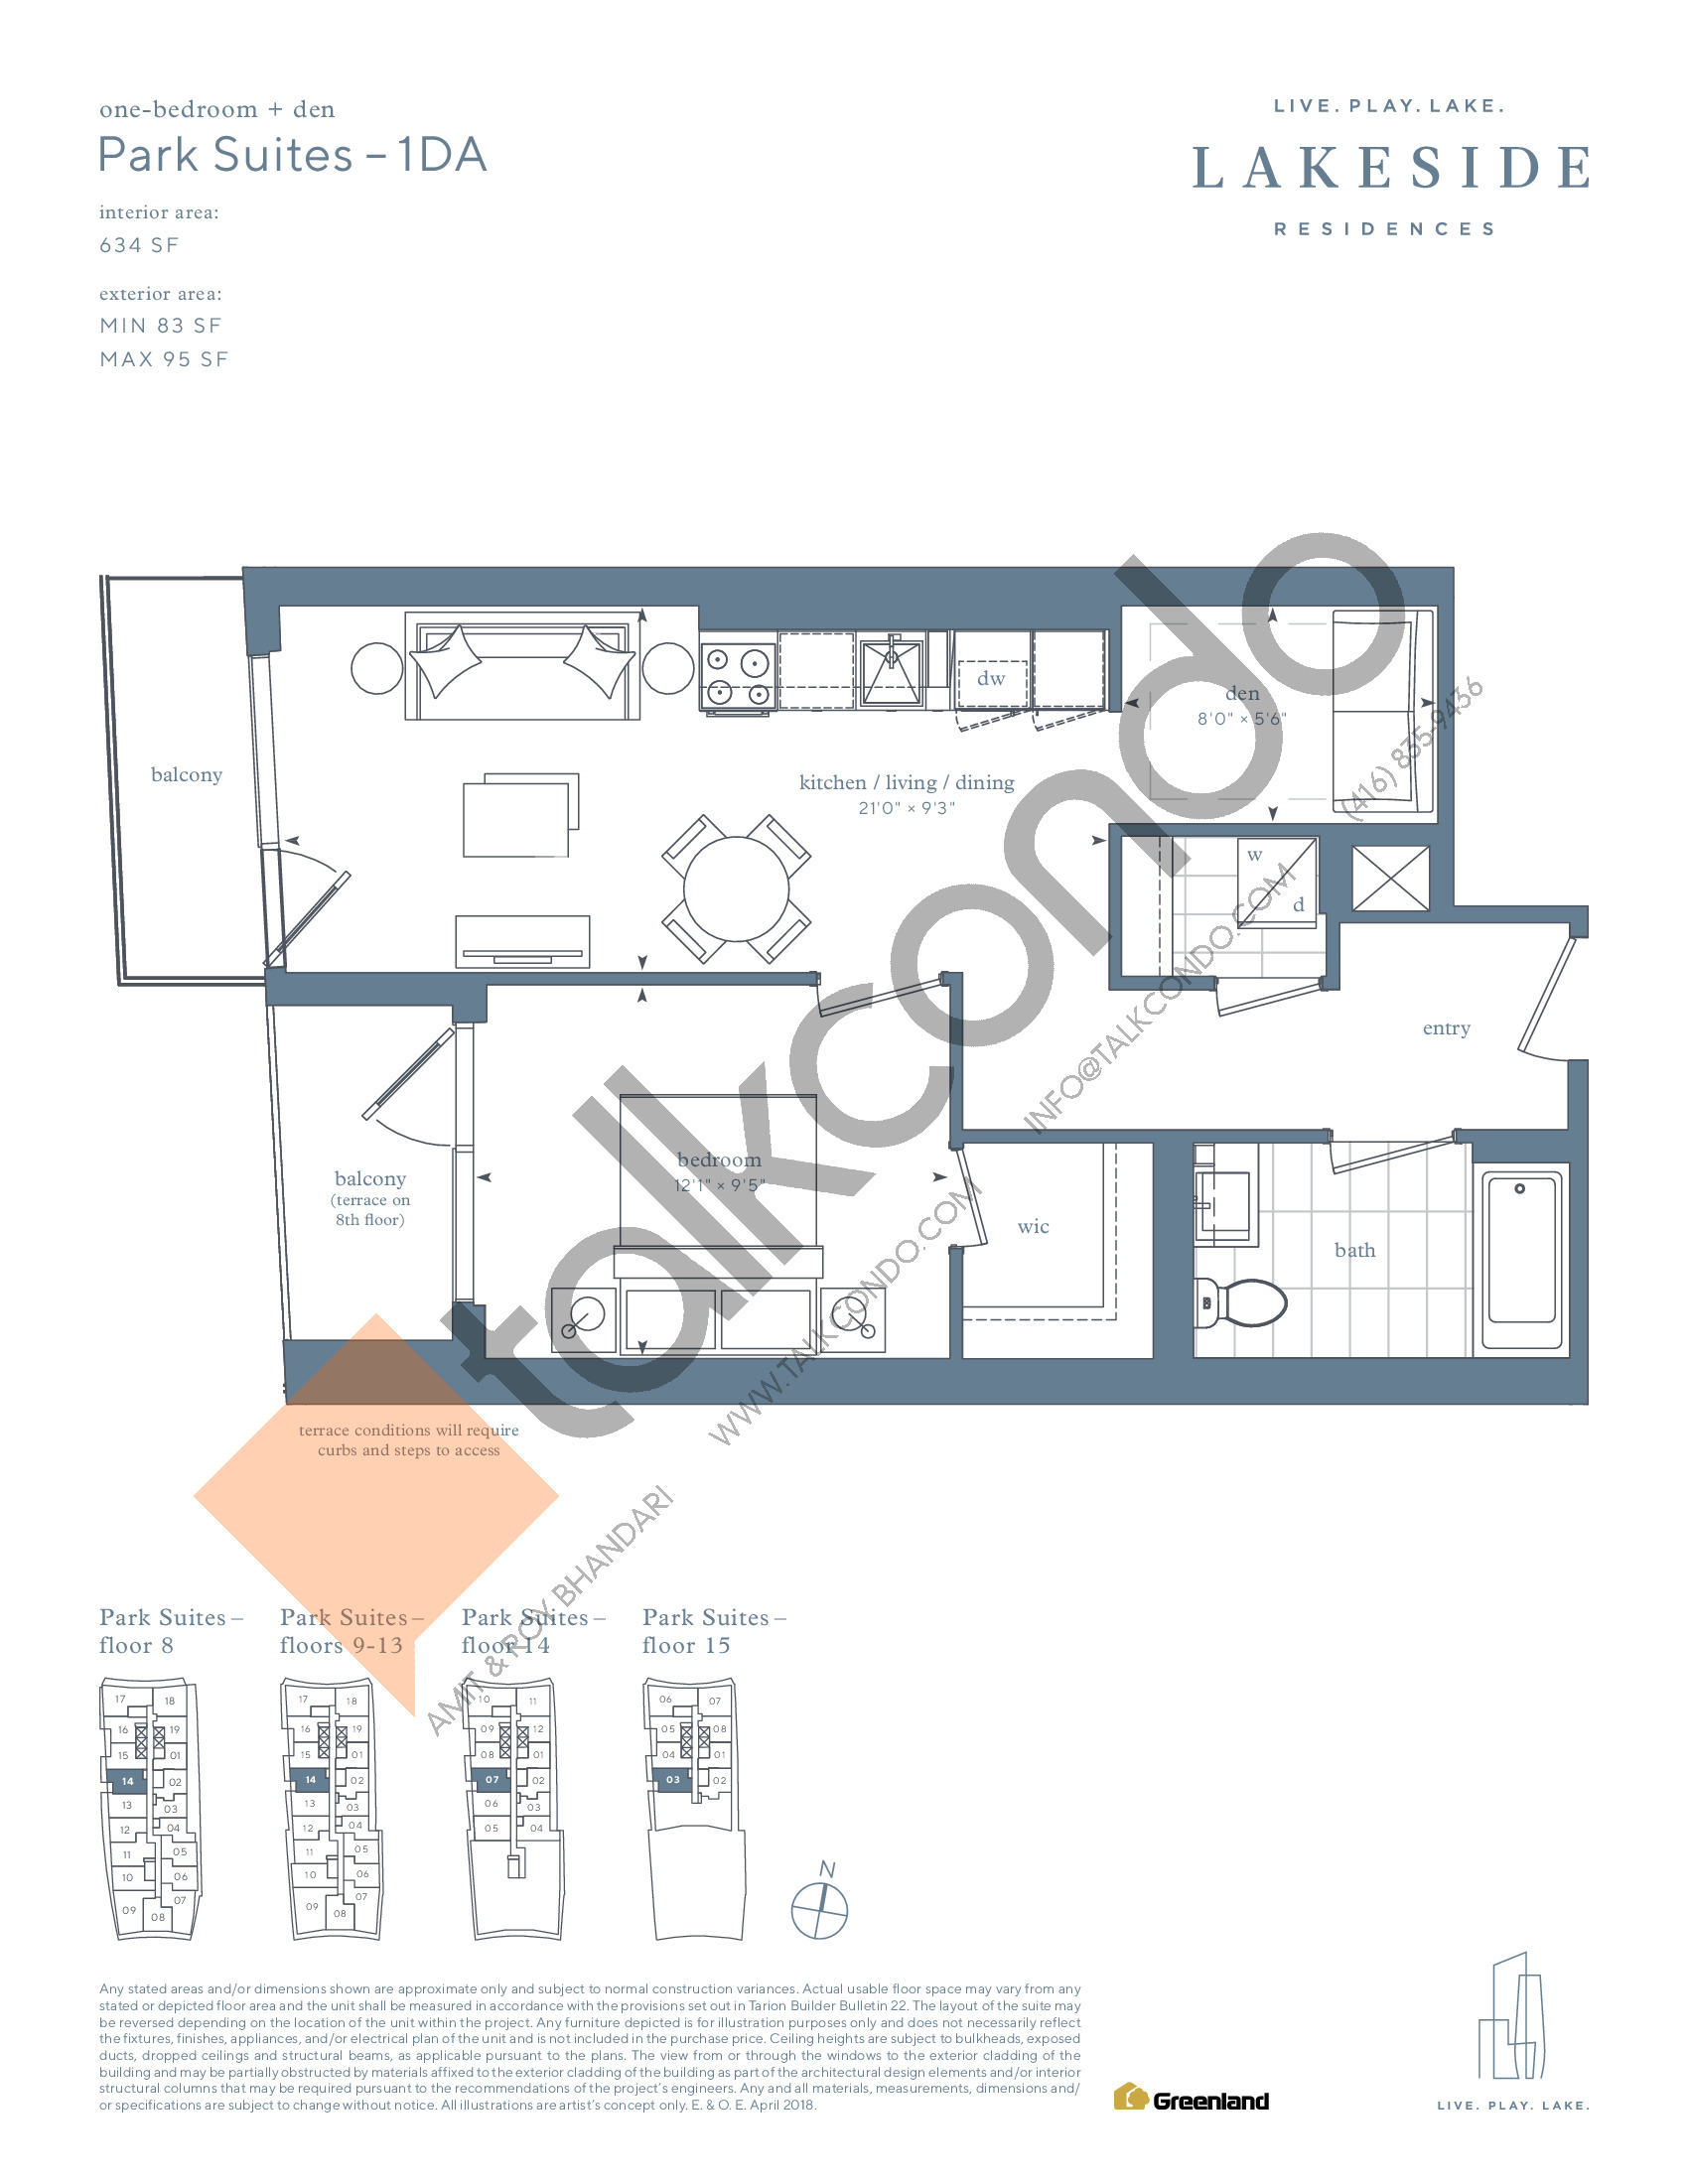 Park Suites - 1DA Floor Plan at Lakeside Residences - 634 sq.ft